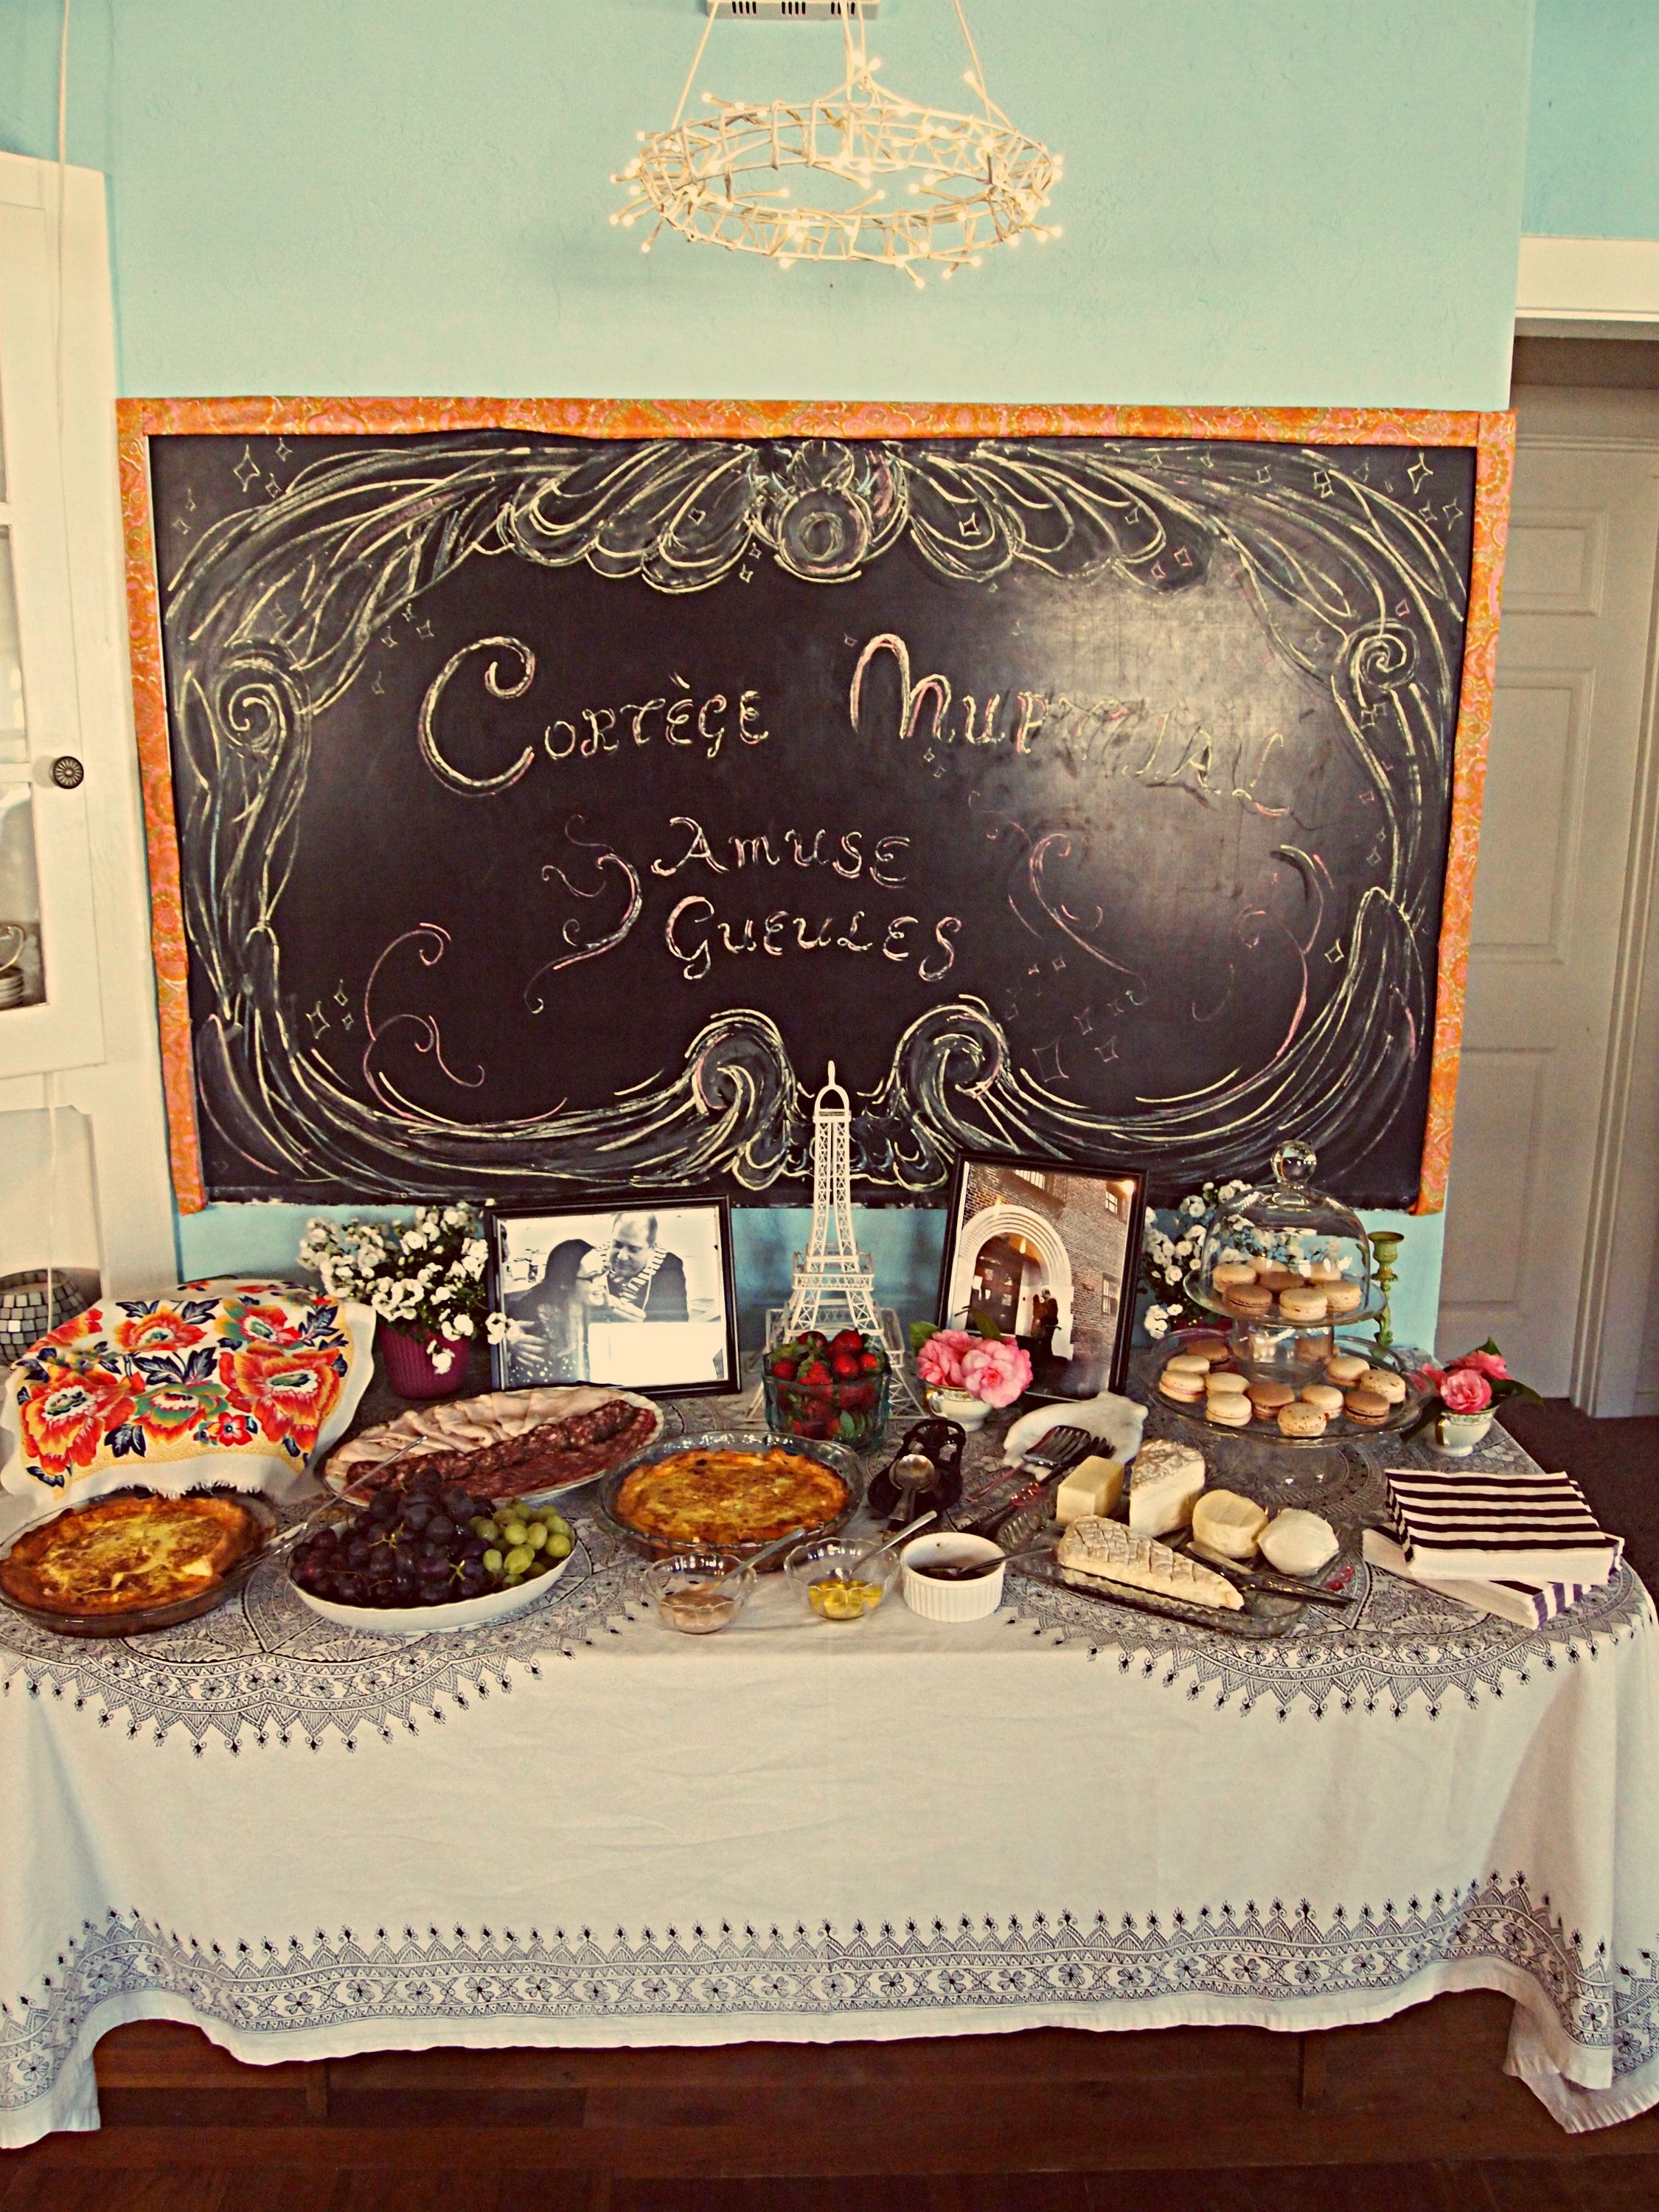 fall bridal shower menu ideas%0A Paris themed bridal shower  The chalkboard says   Bridal Shower  finger foods    in